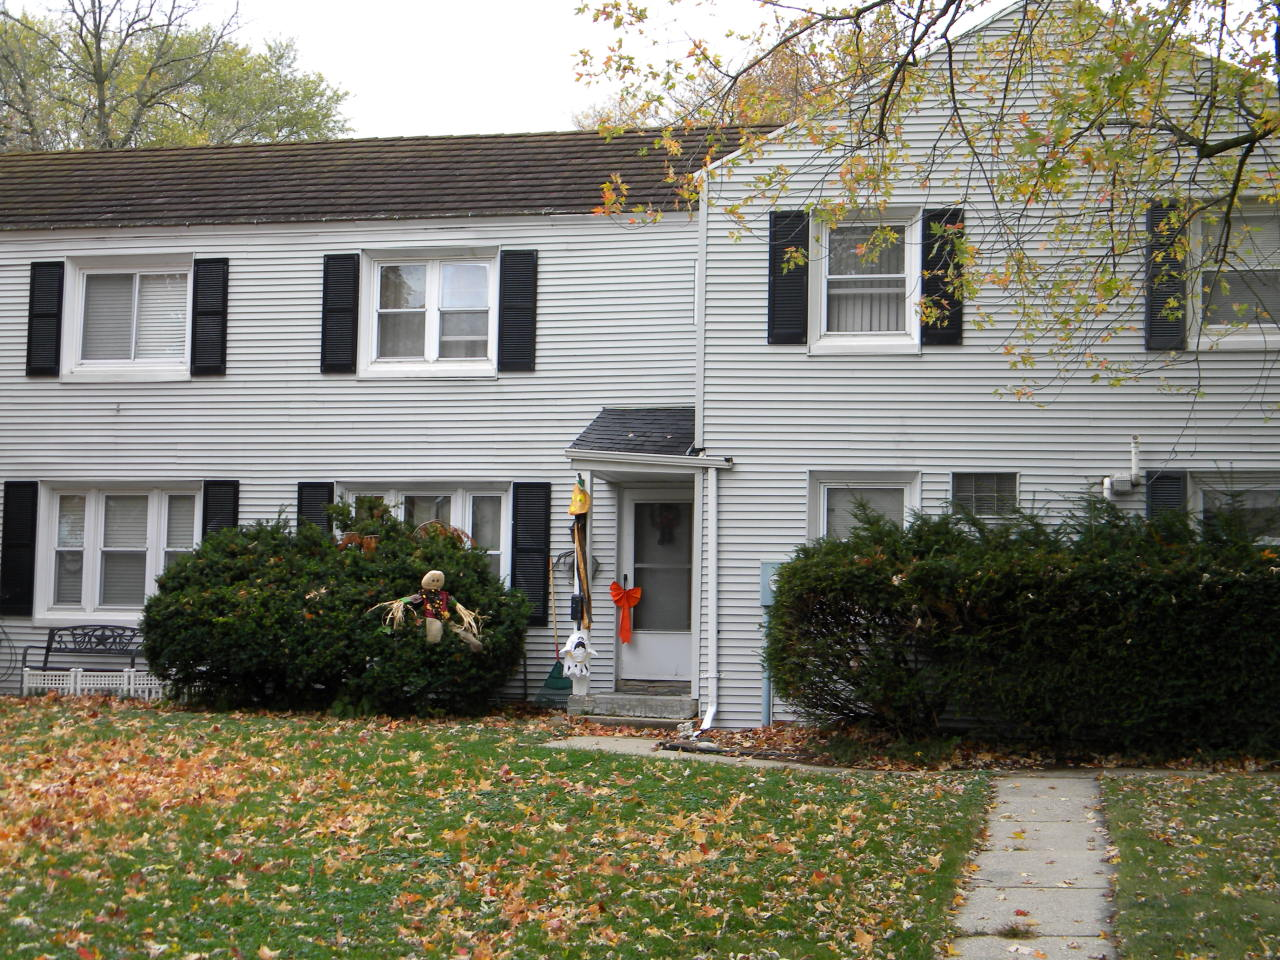 5911 Dendron Ln, Greendale, Wisconsin 53129, 2 Bedrooms Bedrooms, 6 Rooms Rooms,1 BathroomBathrooms,Single-Family,For Sale,Dendron Ln,1715560